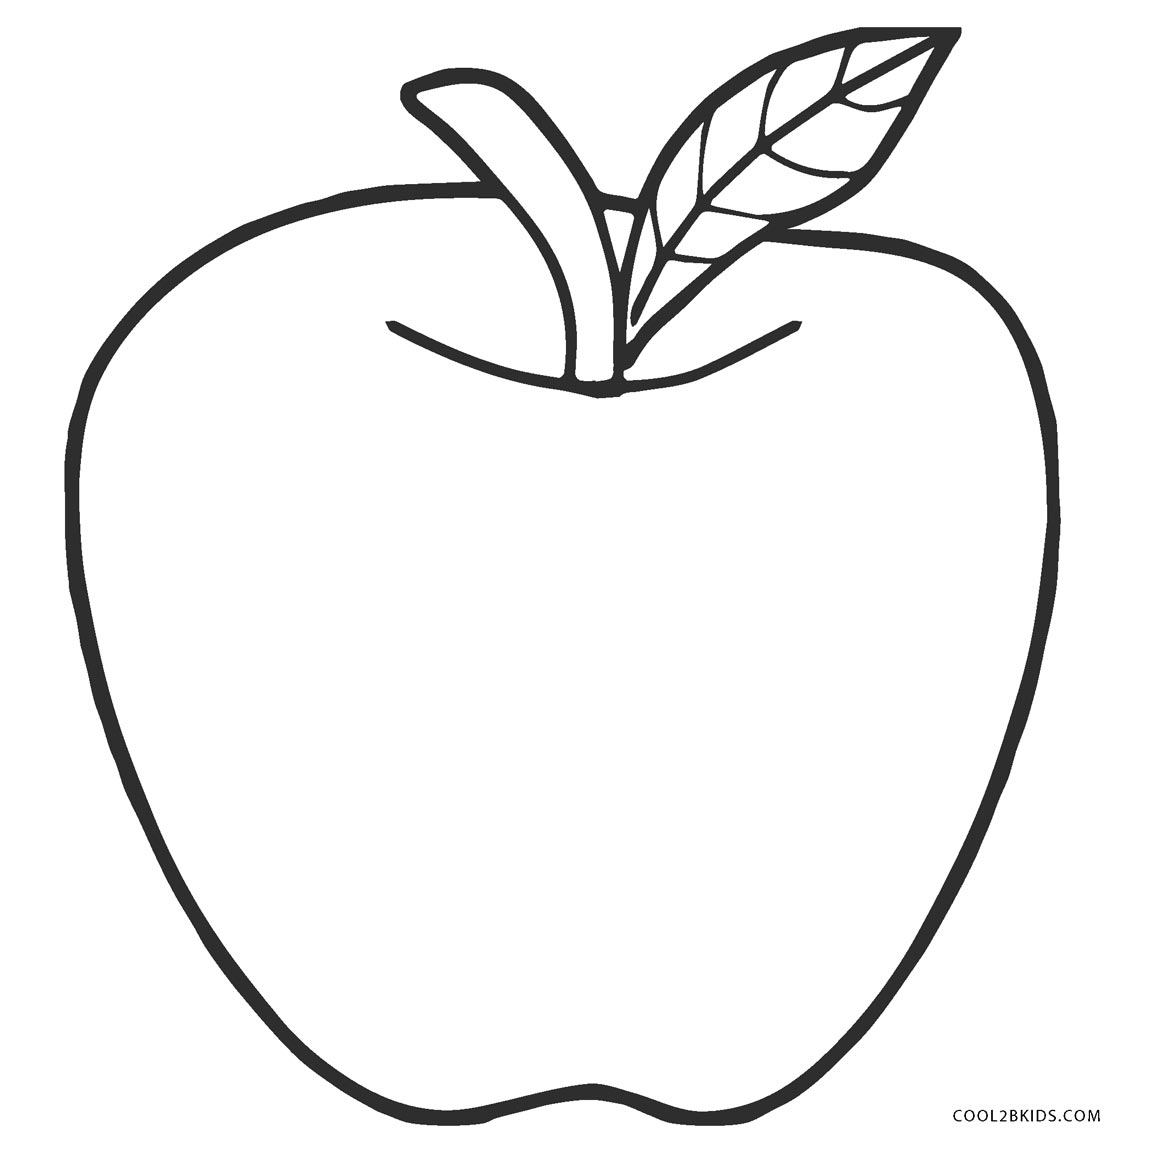 a apple coloring sheet apple coloring pages sheet coloring a apple